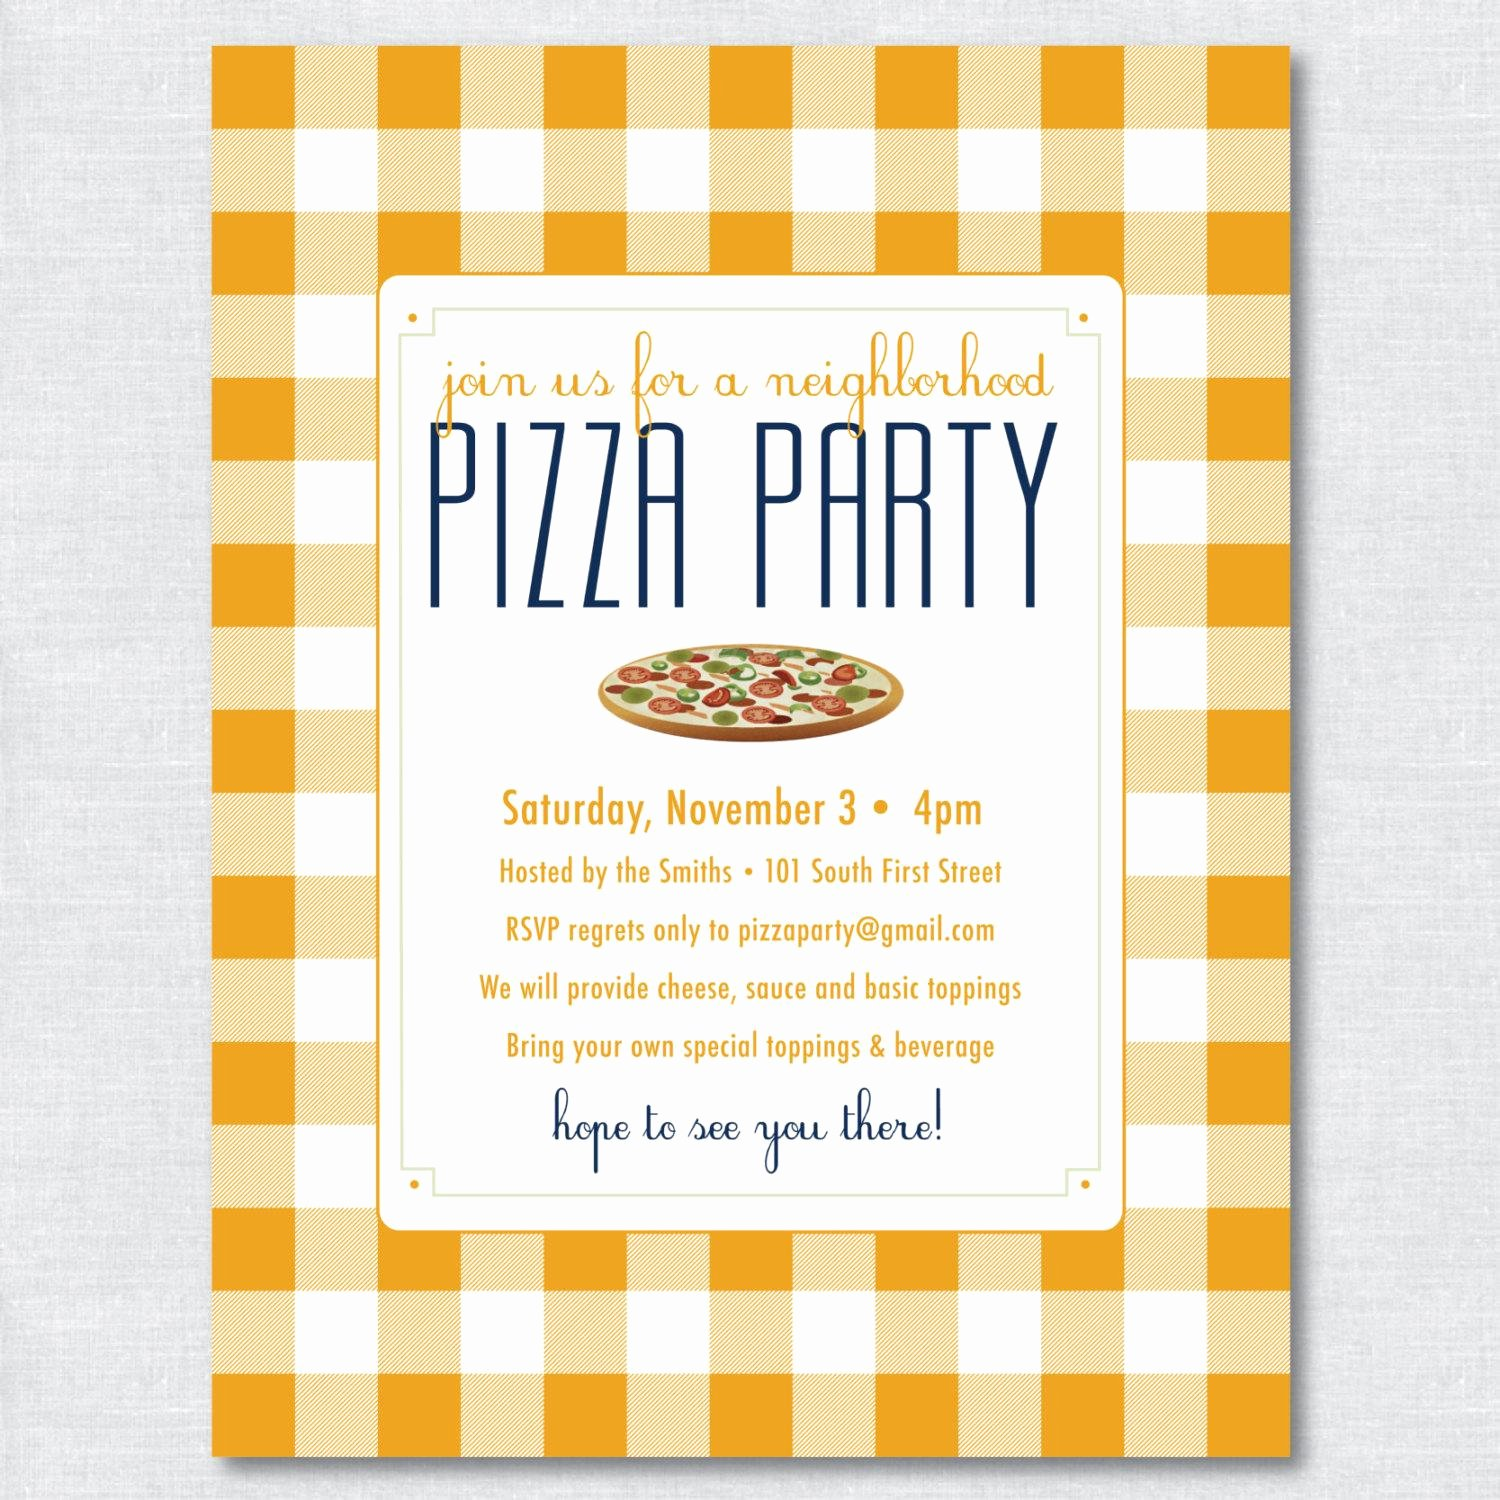 Pizza Party Invitations Template Awesome Pizza Party Invitations